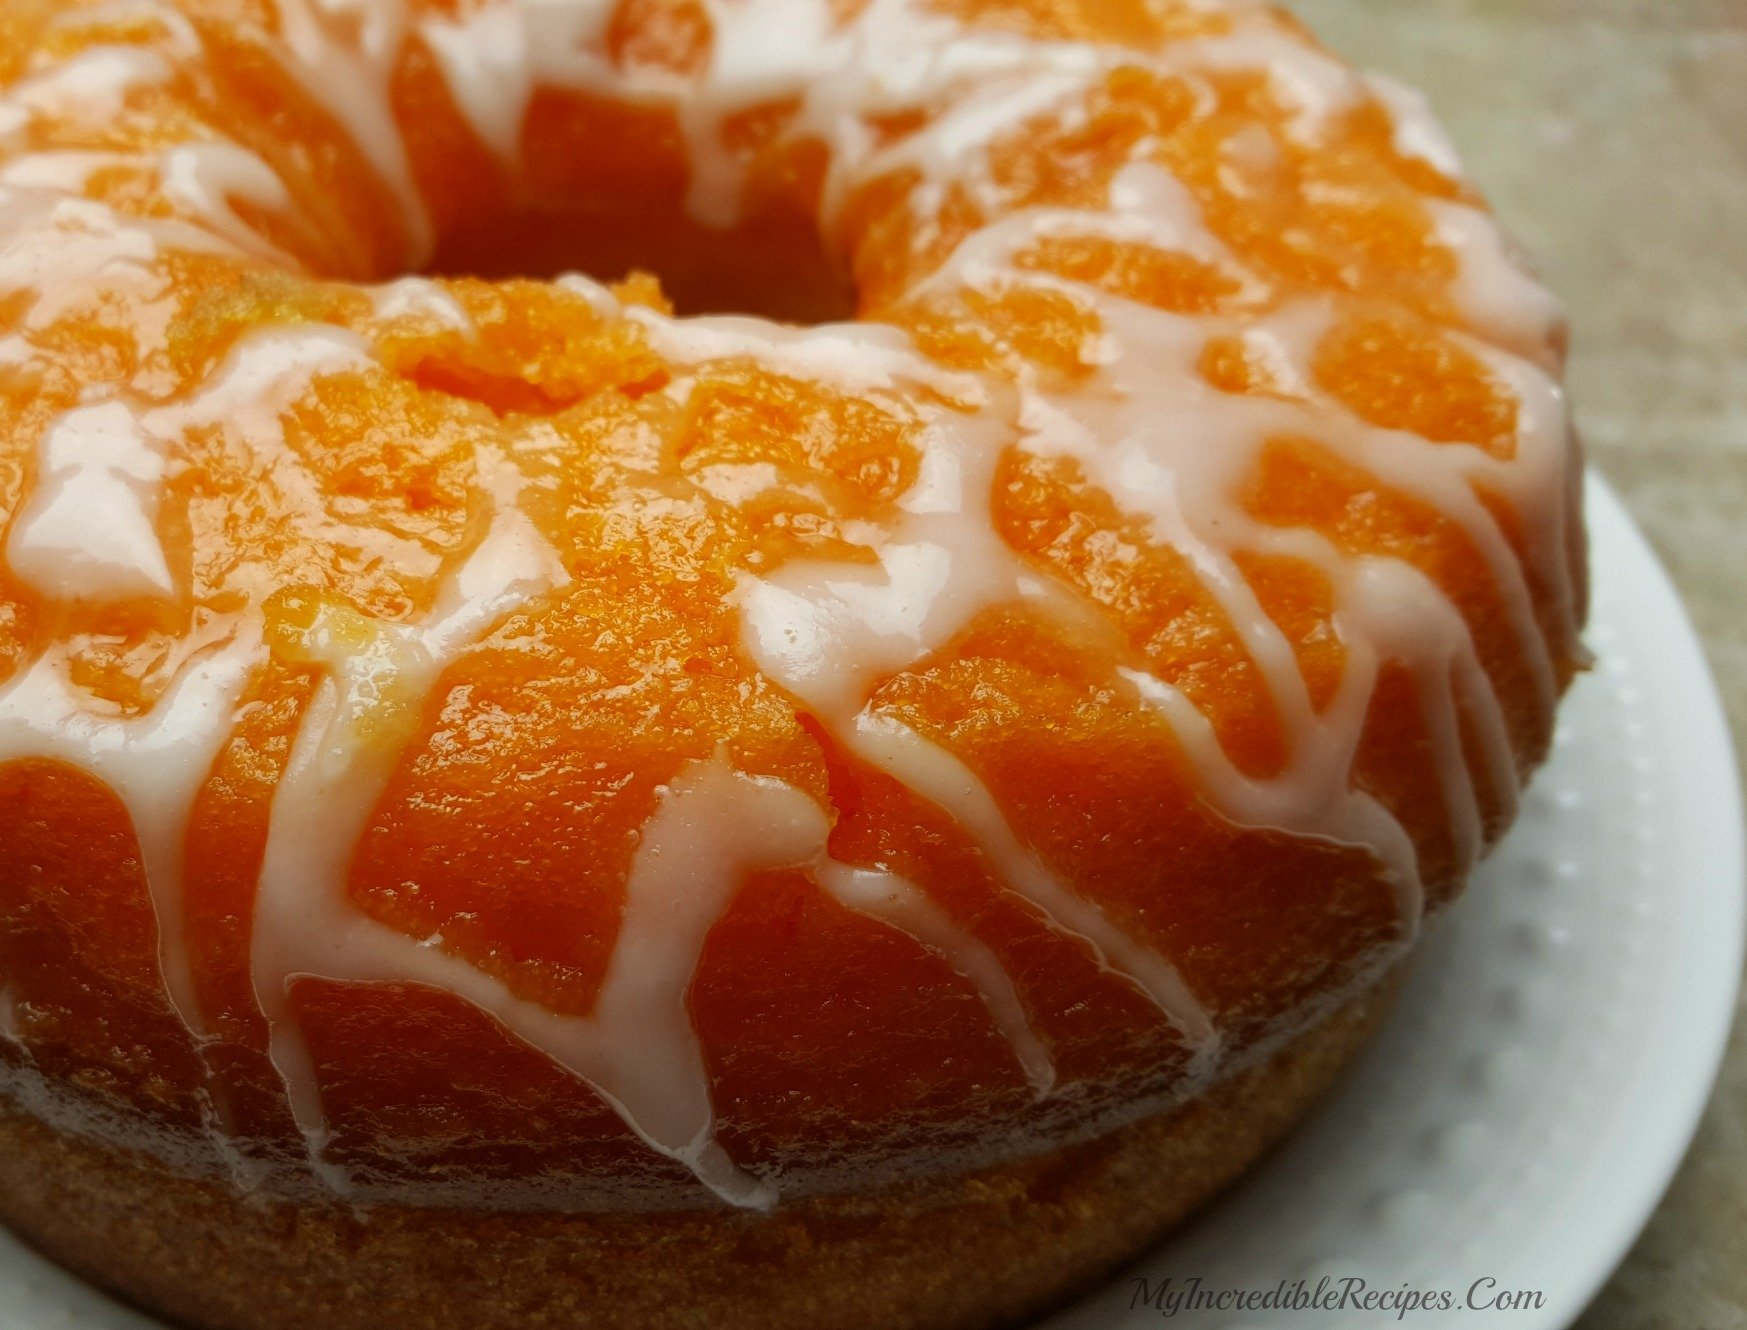 Orange Soda Creamsicle Cake Recipe